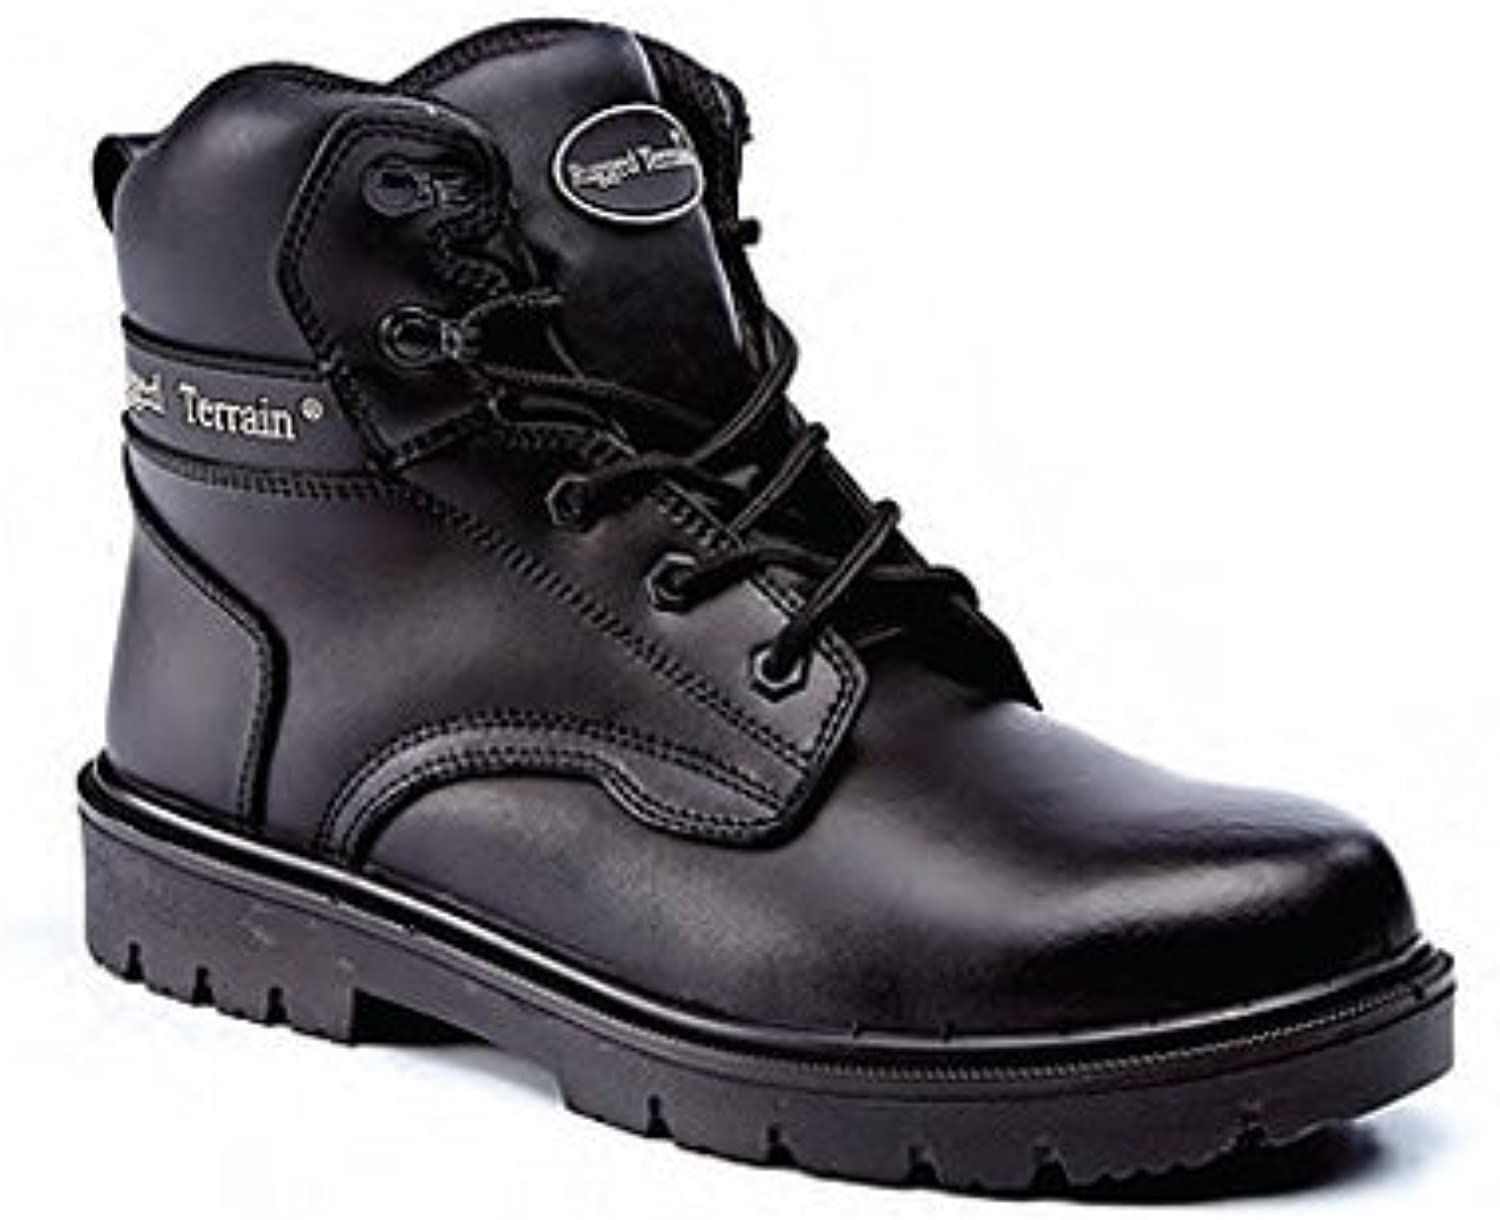 Black Leather Derby Unisex Industrial Work Boots - Choice of Sizes Available (Size 13) - Ref SFW06 13